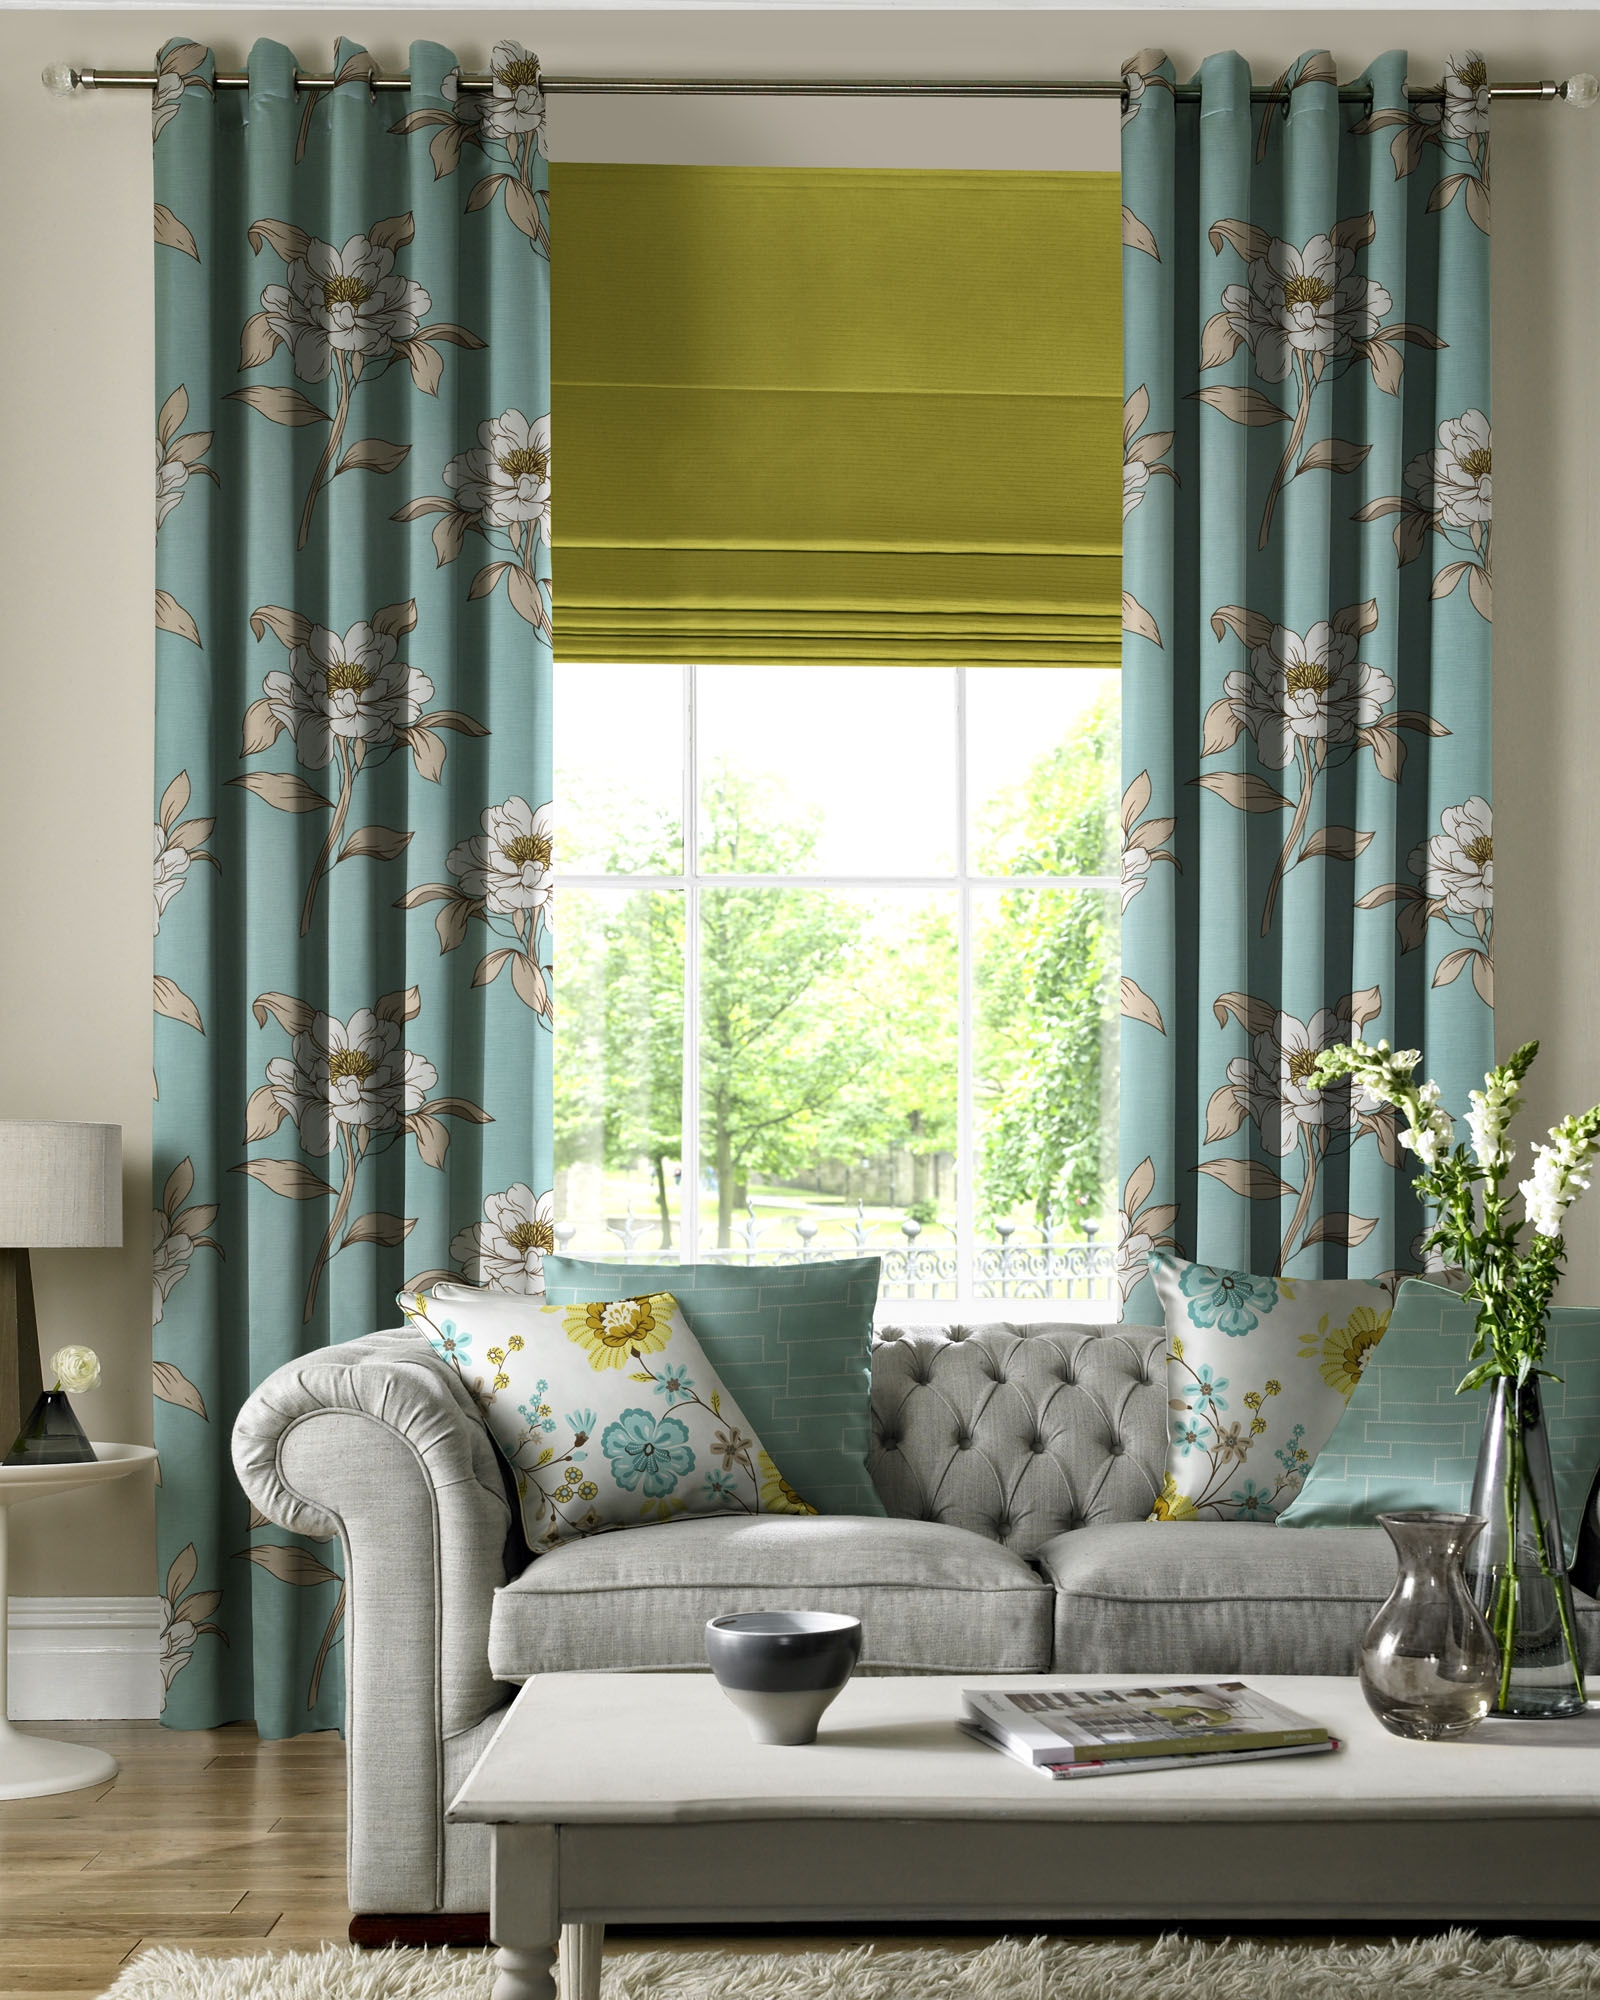 15 collection of matching curtains and roman blinds curtain ideas - Clever window curtain ideas matched with interior atmosphere and concept ...